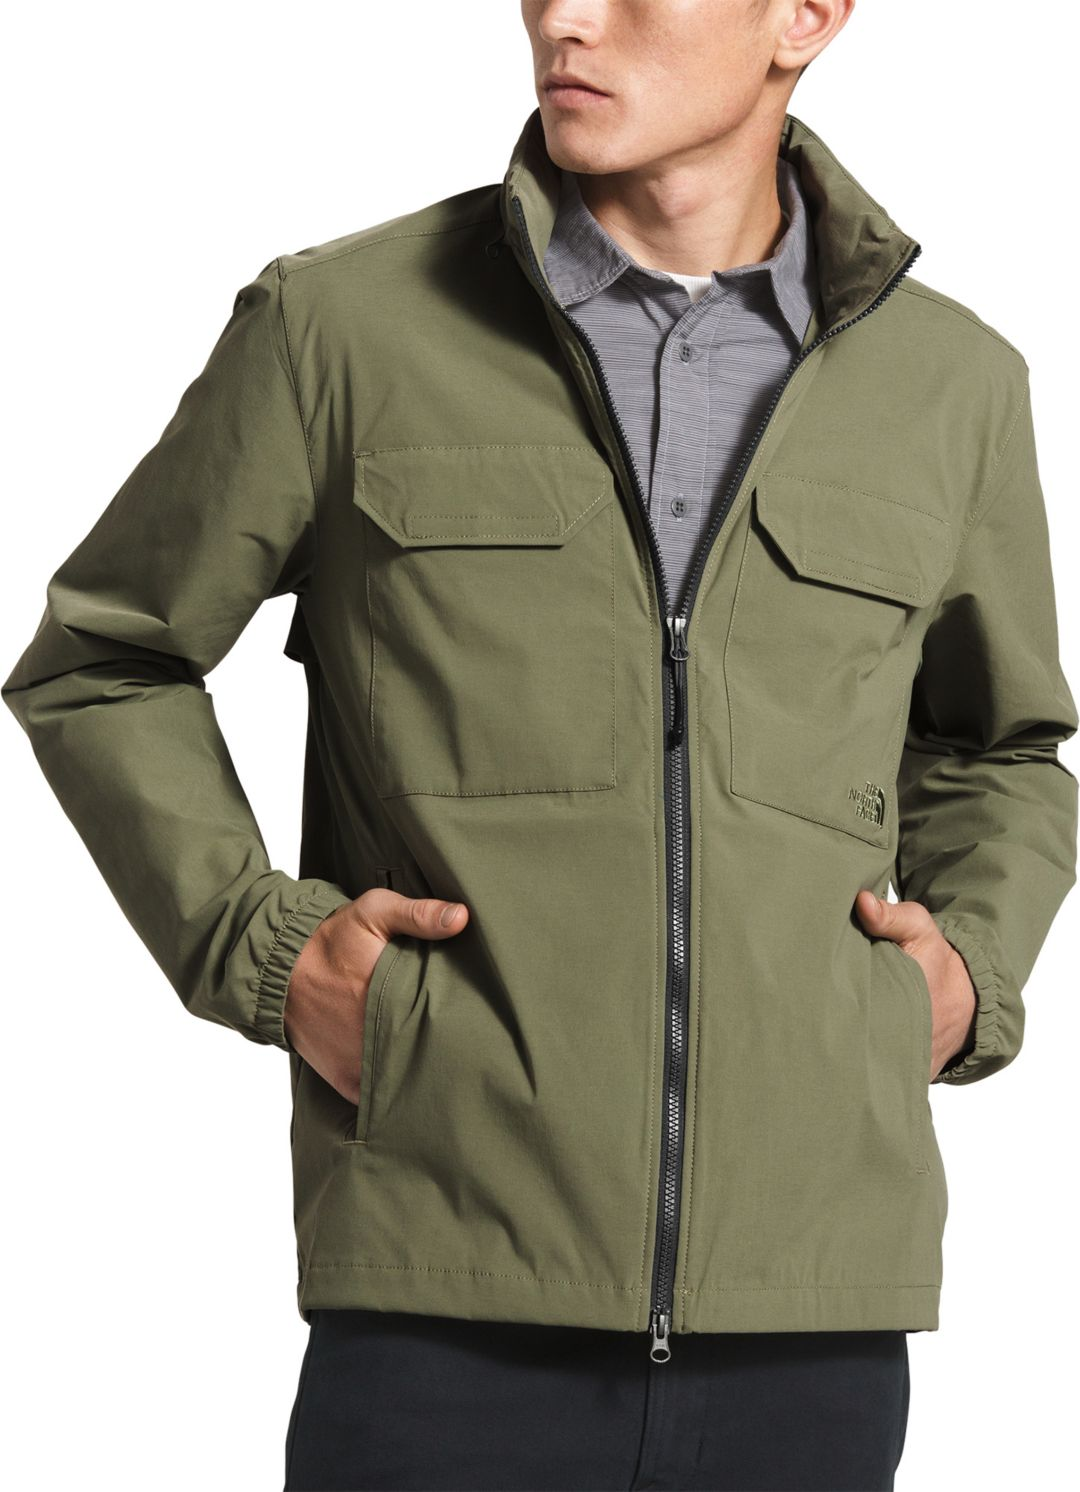 a1ff0ae1d The North Face Men's Temescal Travel Jacket